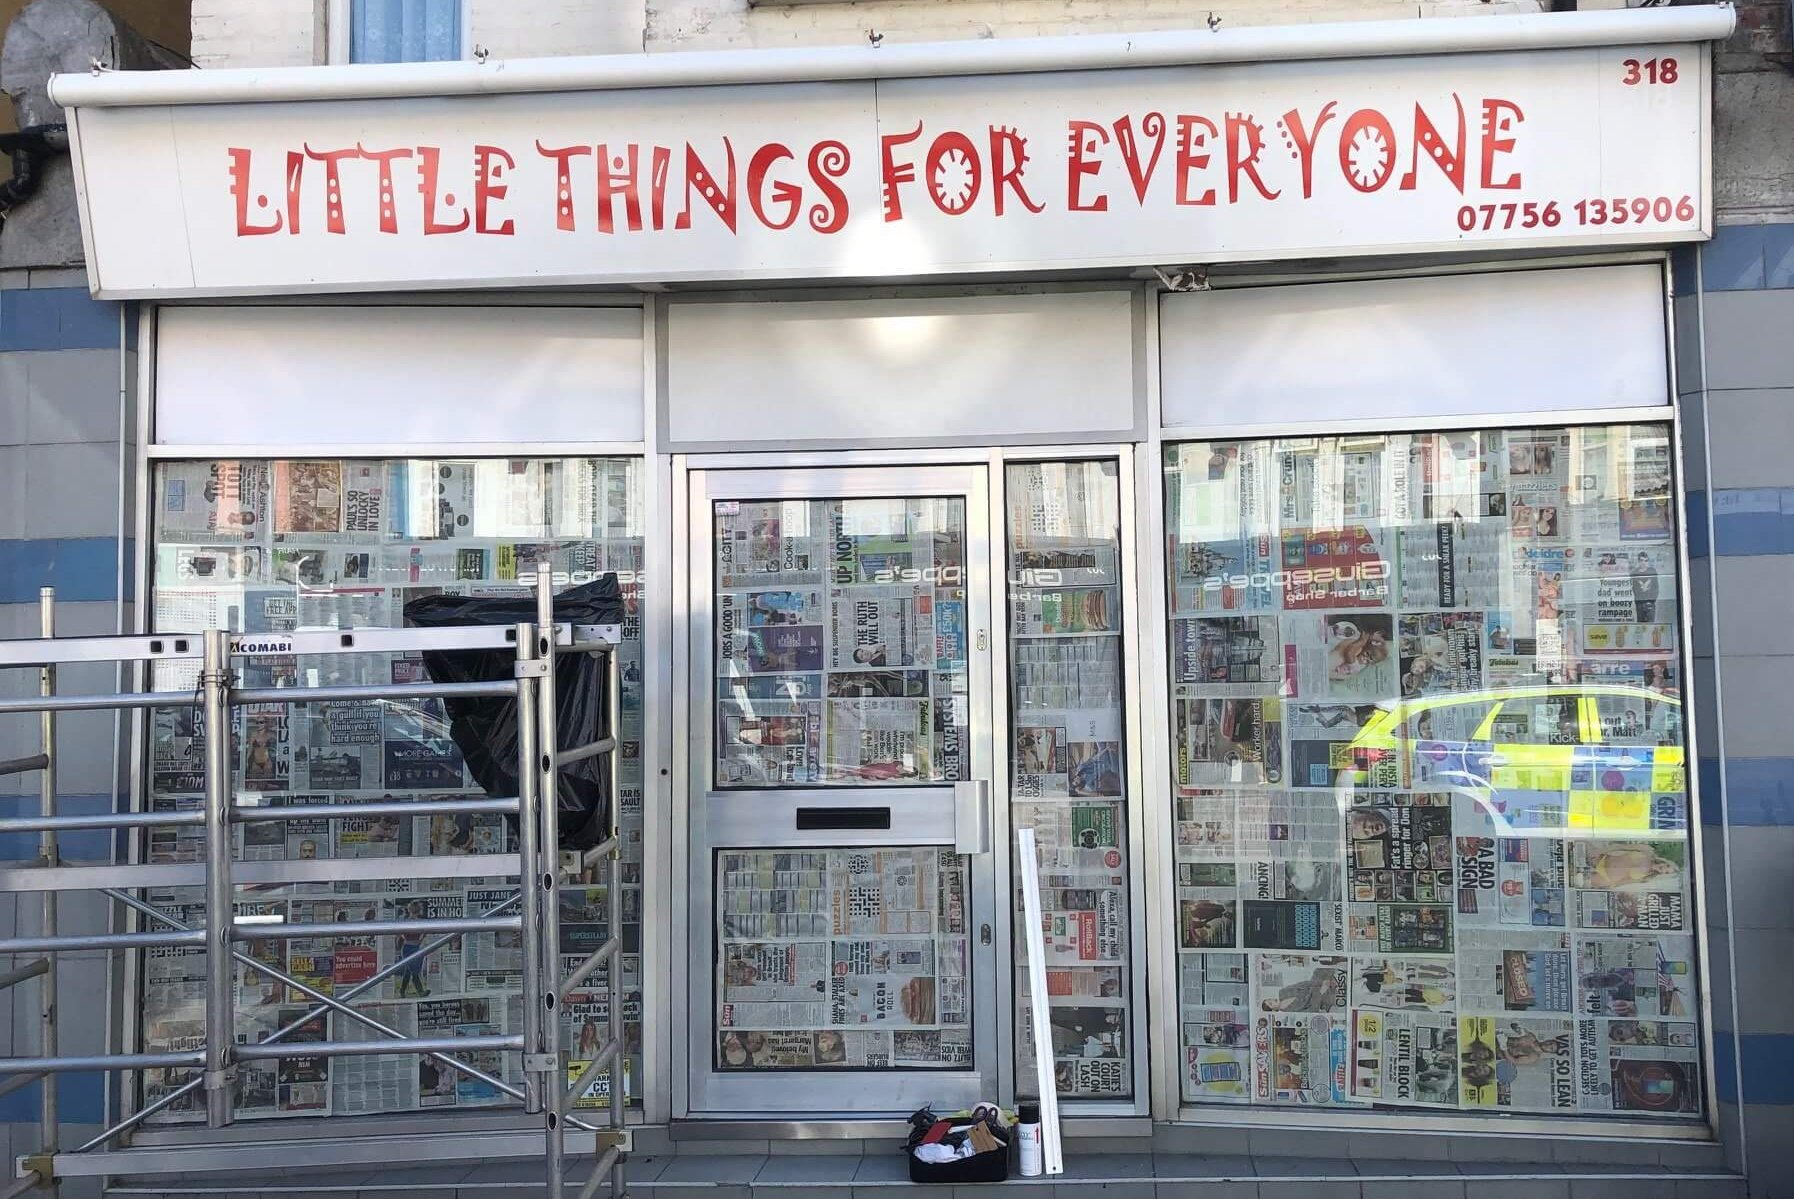 Little Things shop sign